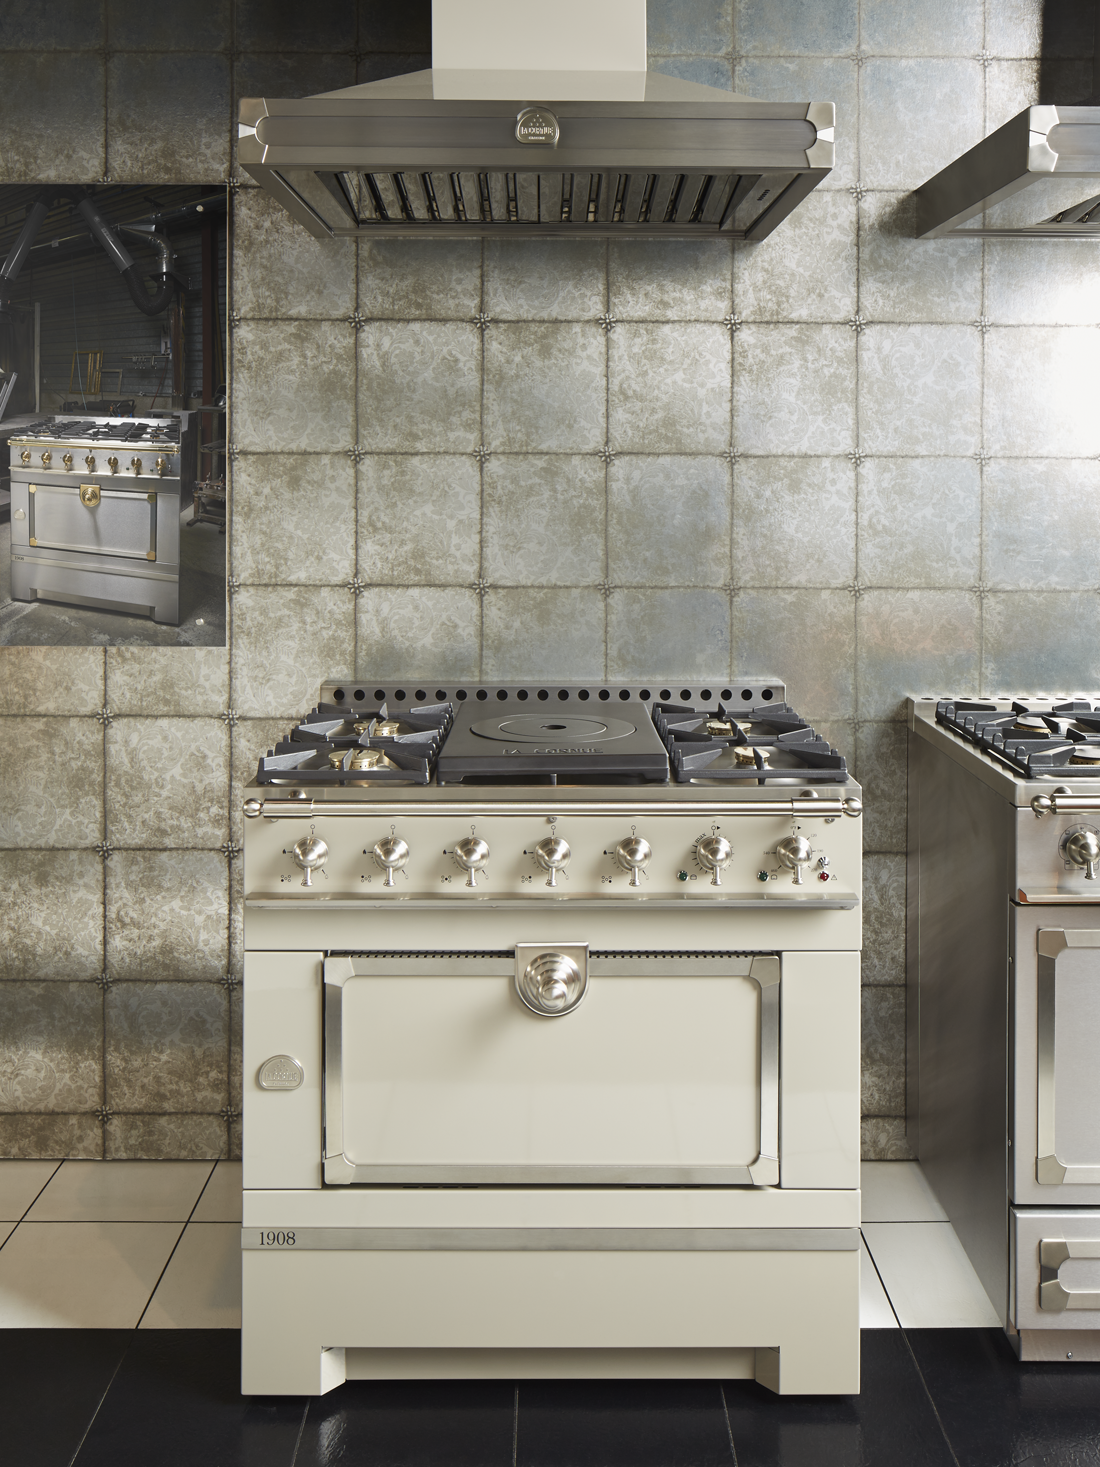 The Cornufe 1908 Is Newest Range In La Cornue Family It Combines Patented Gas Vaulted Oven Of Cau Series With Universal Eal